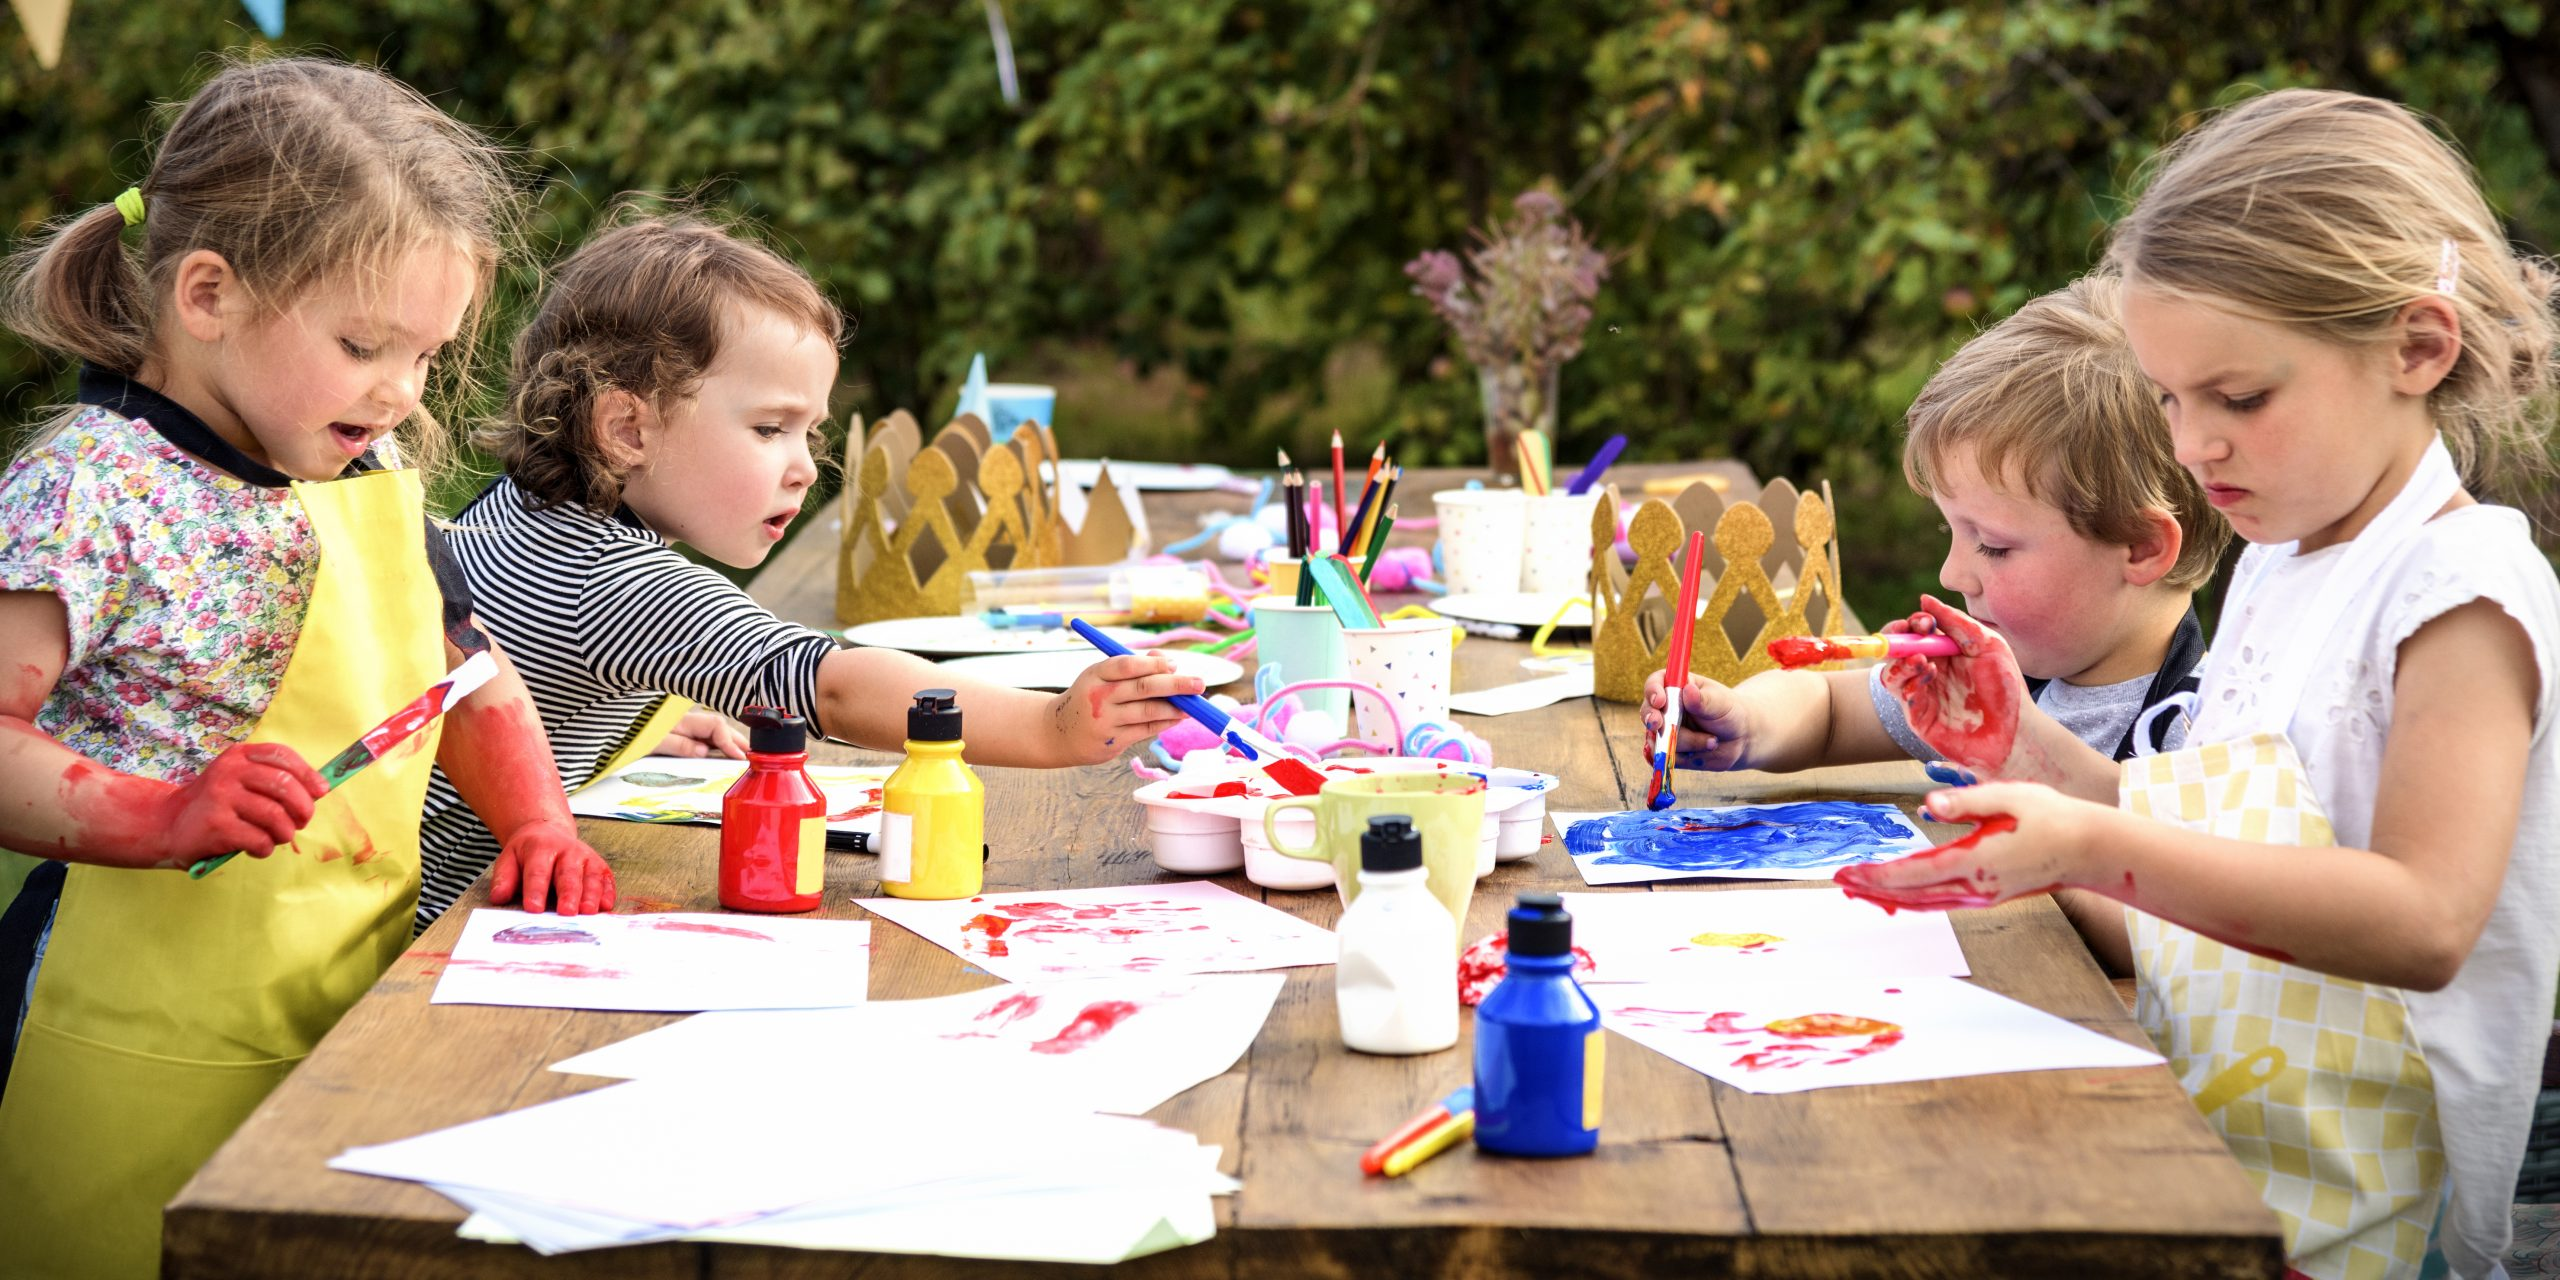 Win a private paint party with Party n Paint Worth £650!